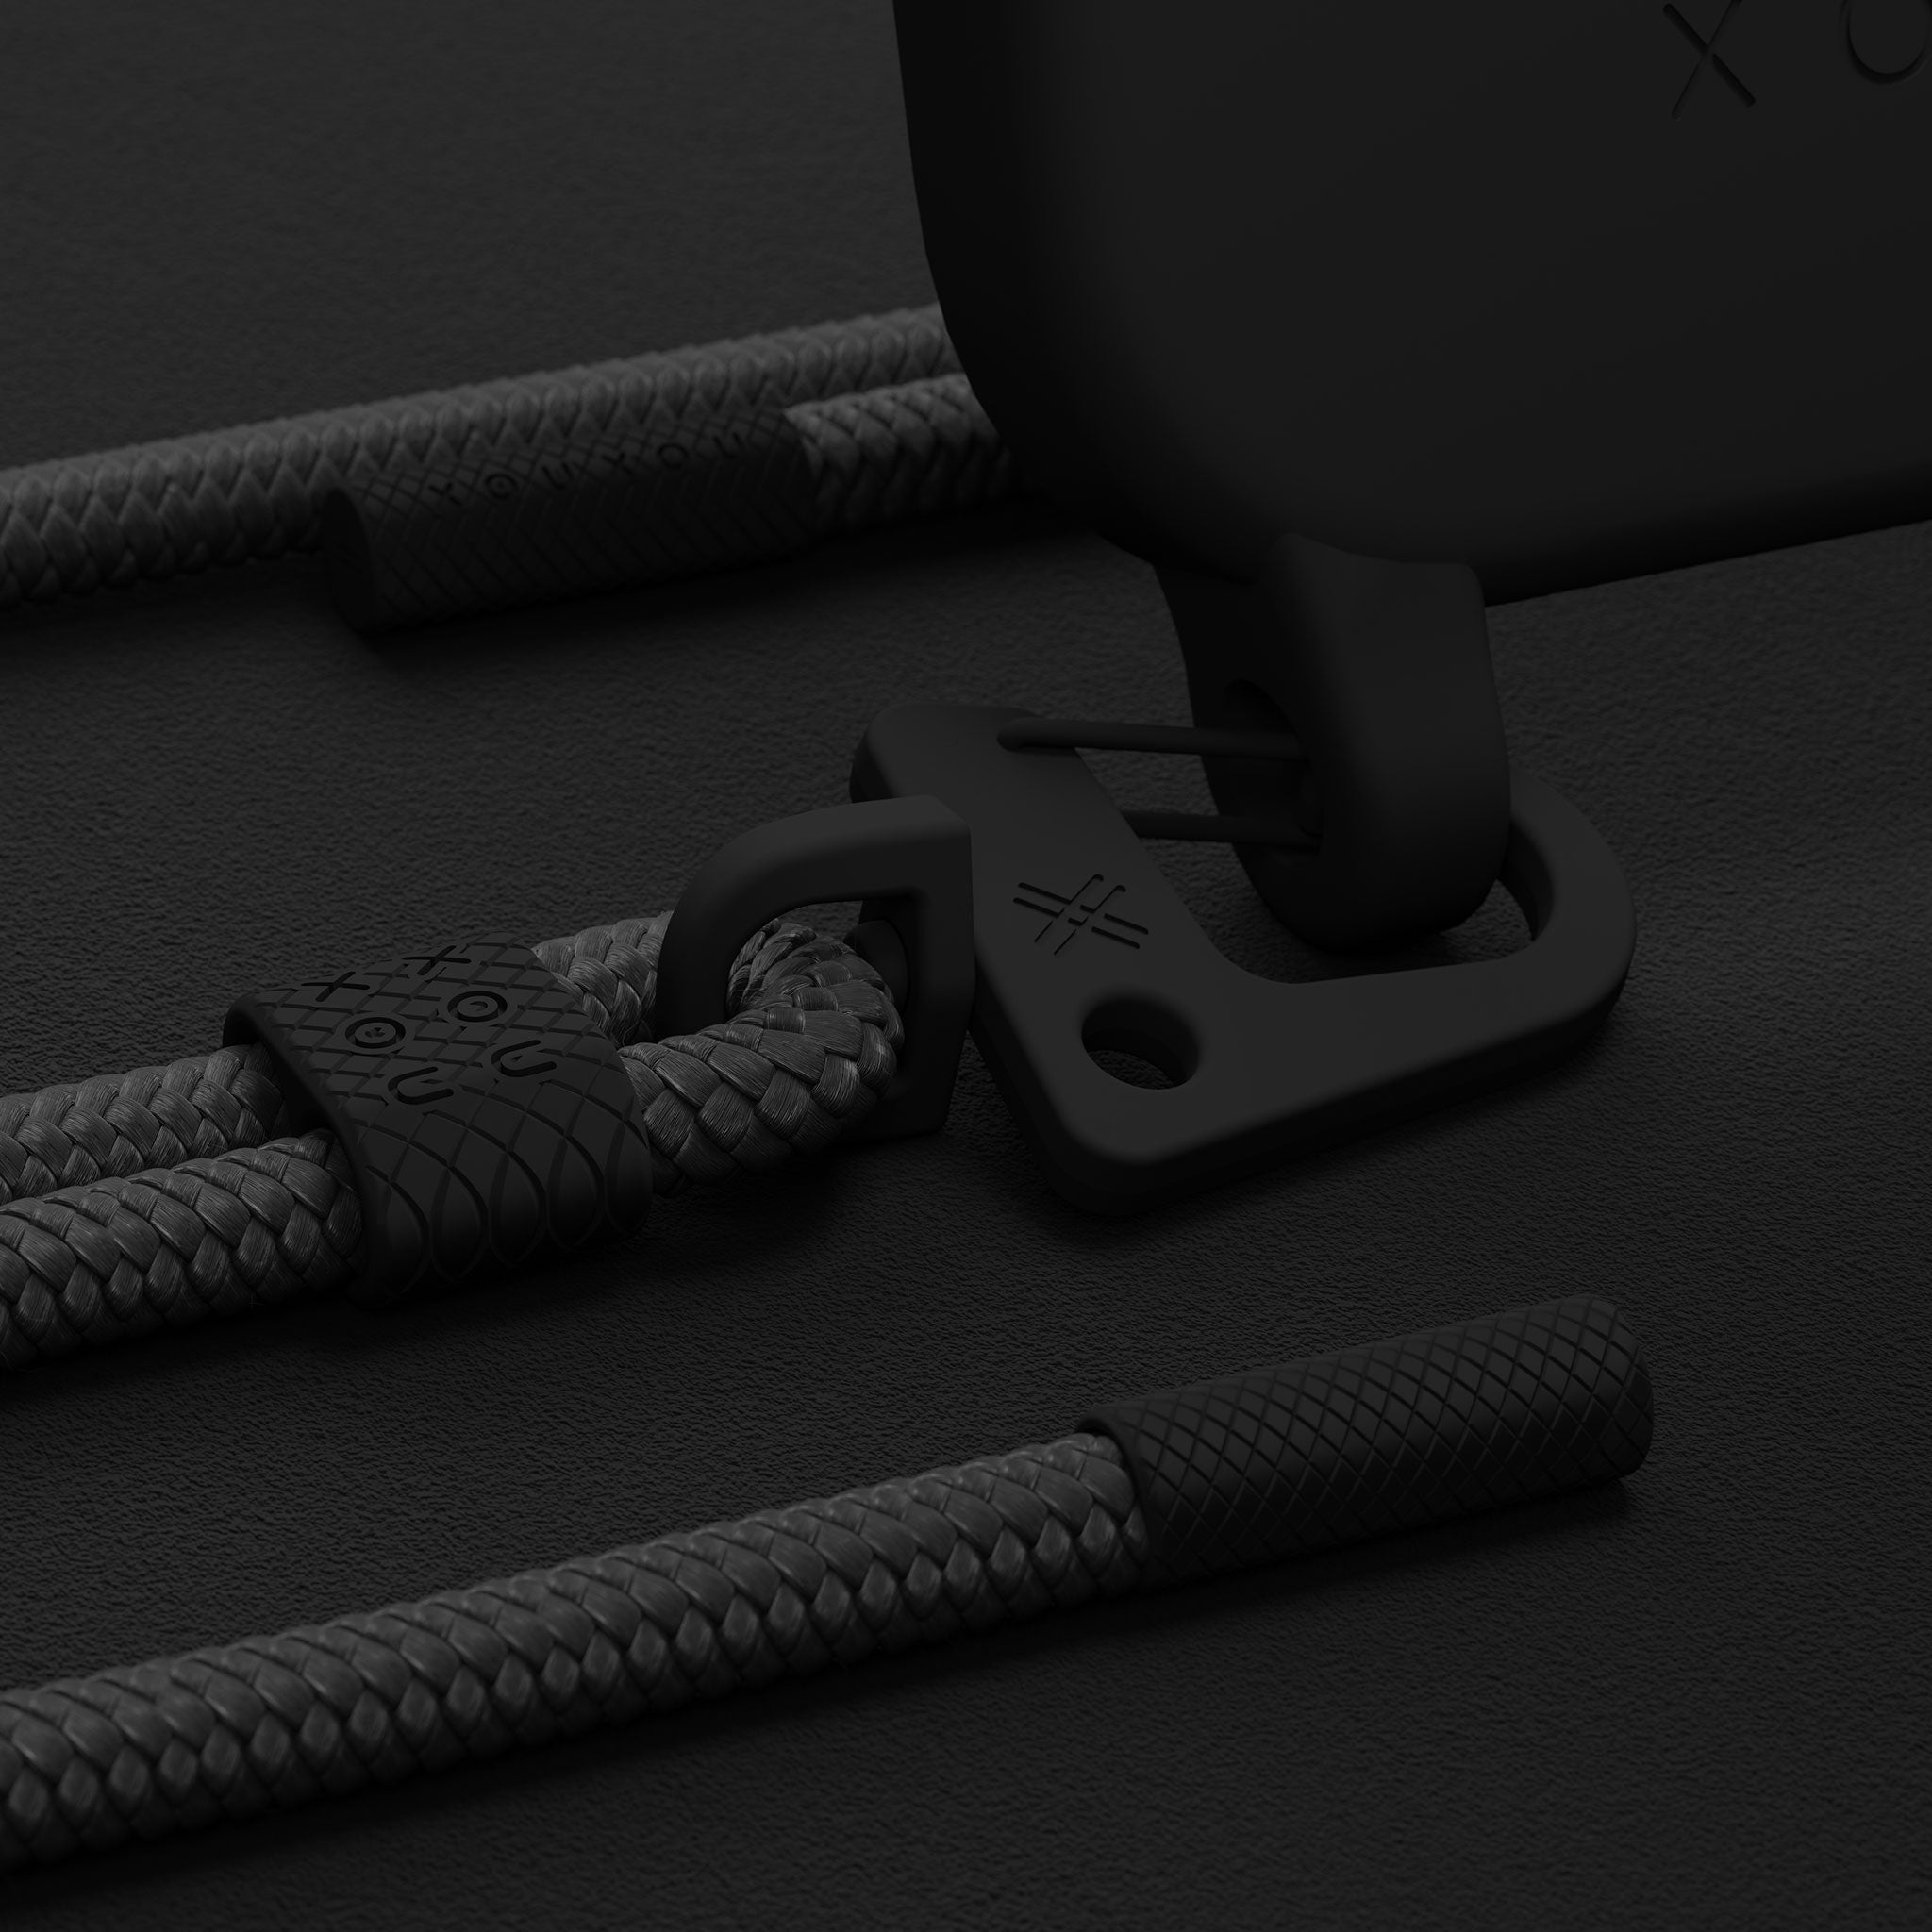 All Black Silicone Case + Carabiner Rope